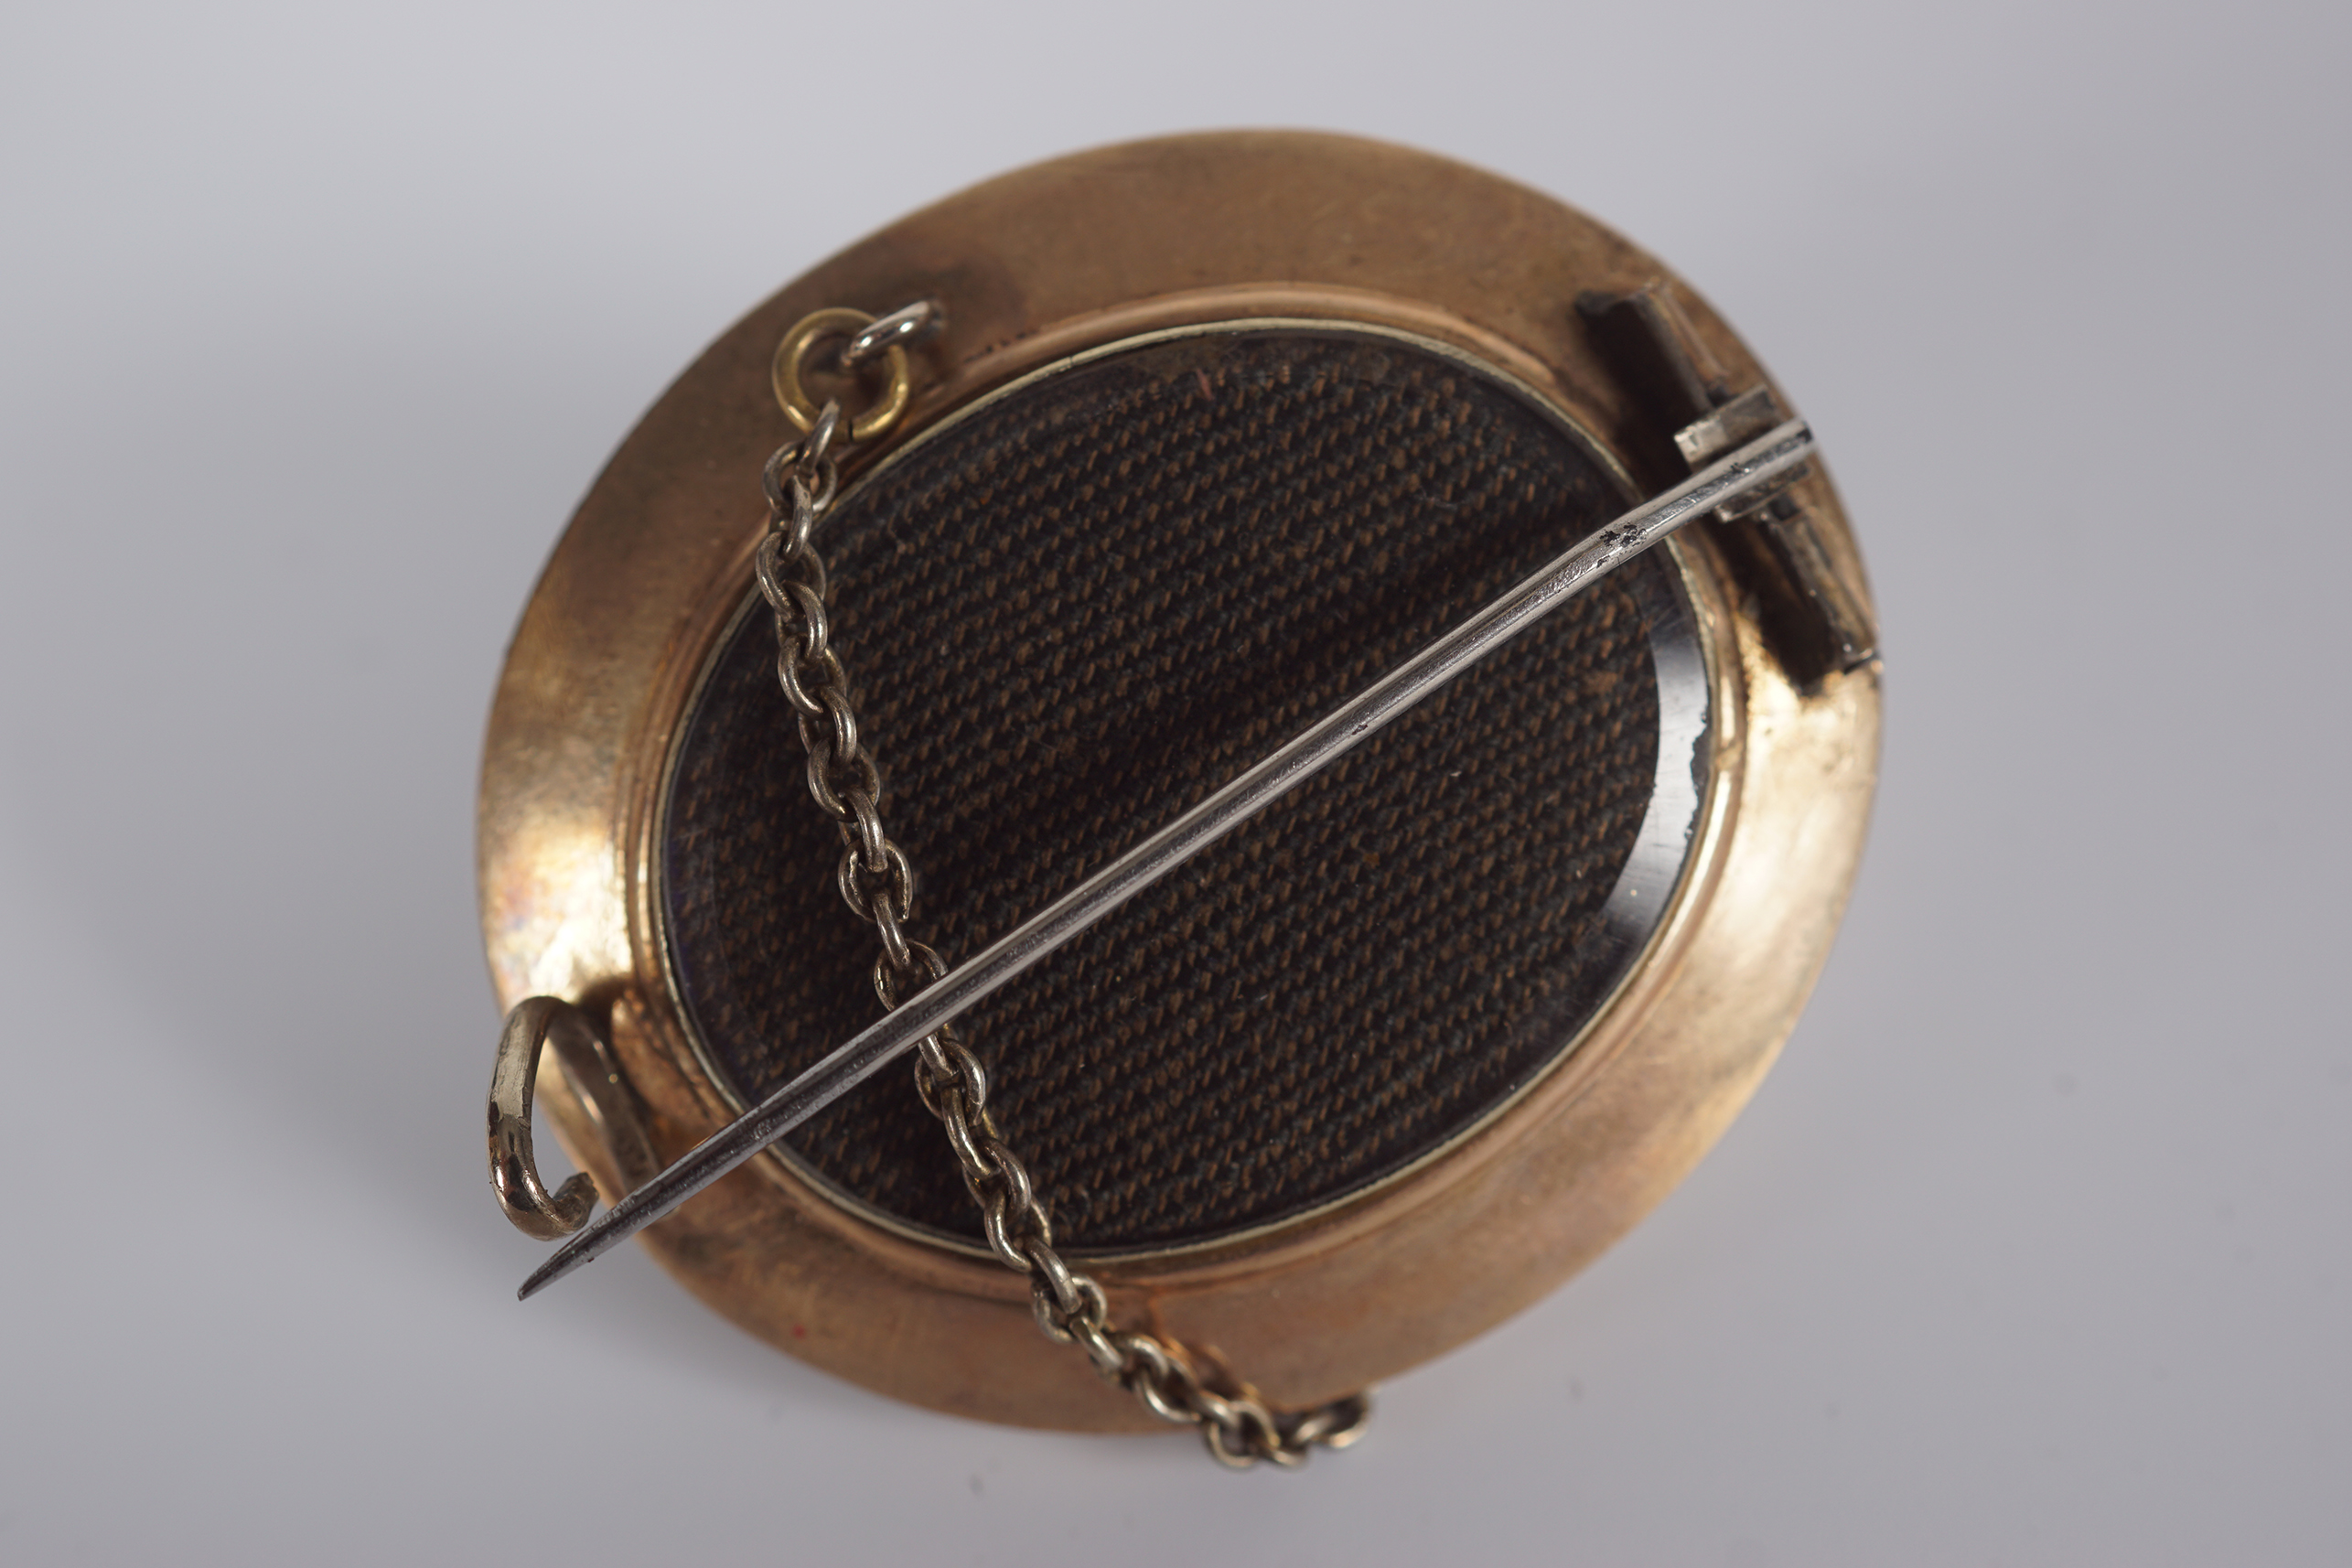 ANTIQUE GOLD AND ENAMEL MOURNING BROOCH - Image 2 of 3